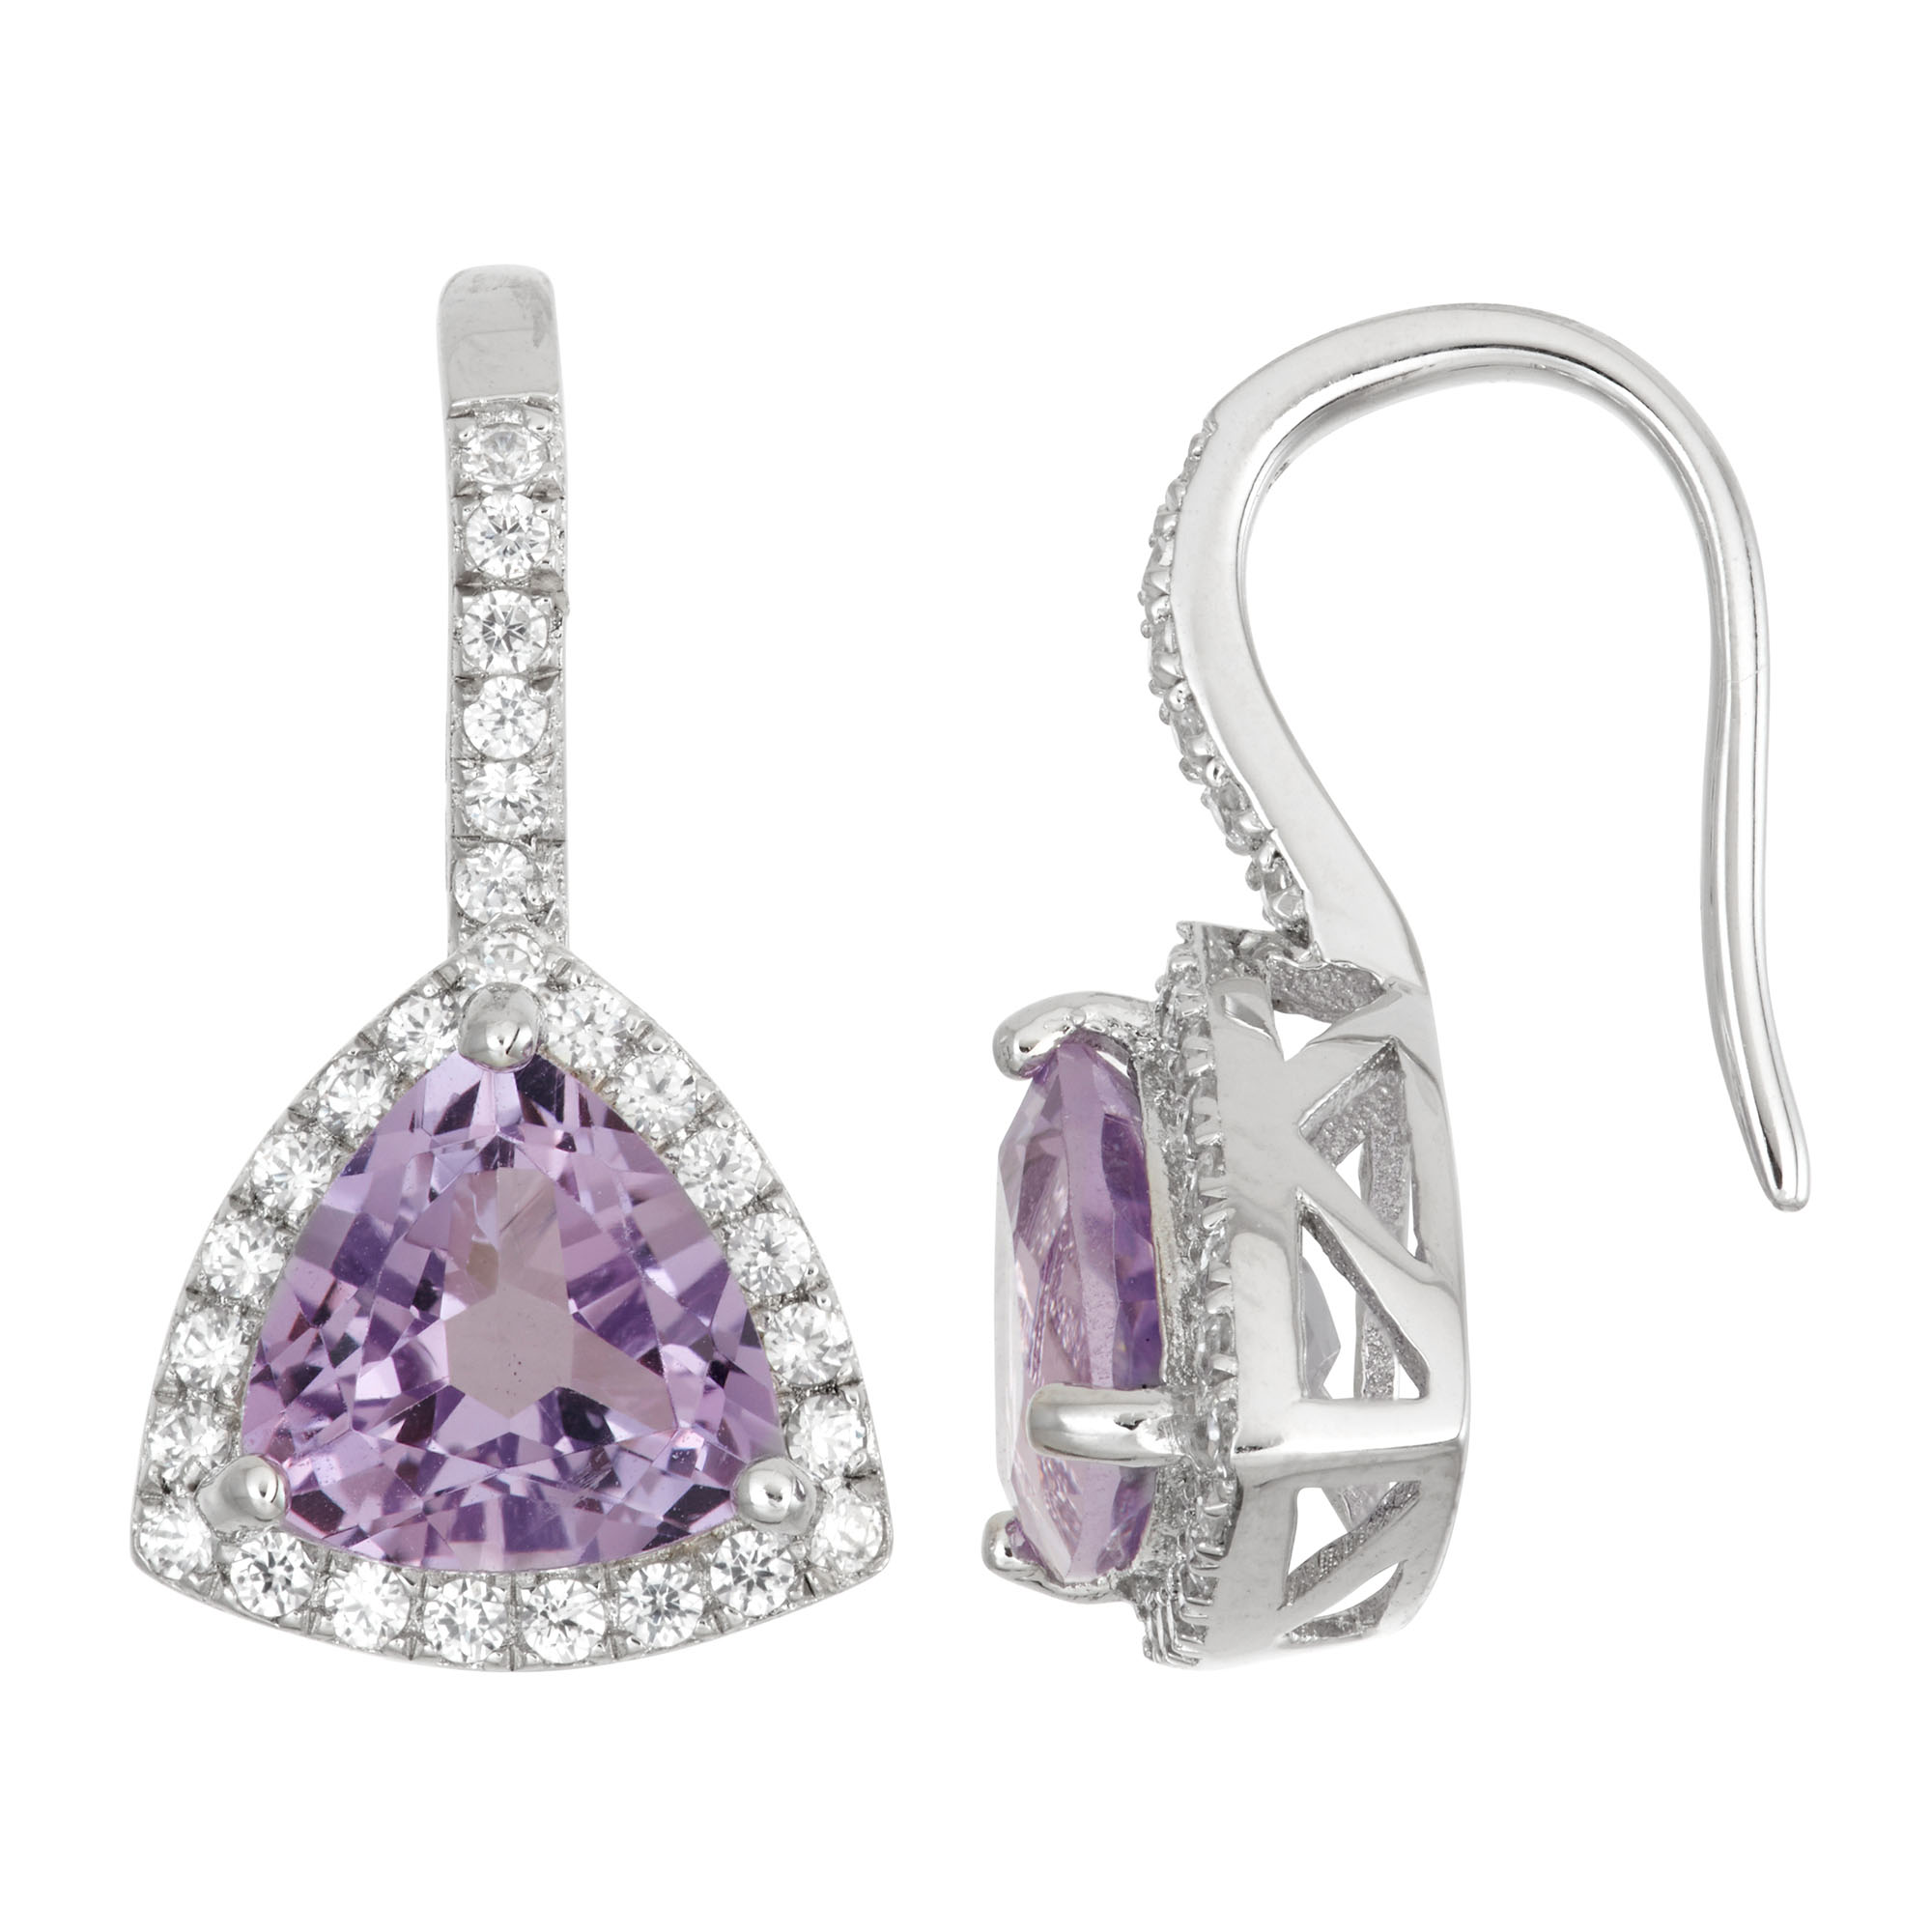 Sterling-Silver-Earring-with-7mm-Trillion-Cut-Gemstone-and-Gallery-of-Dalloz-CZ